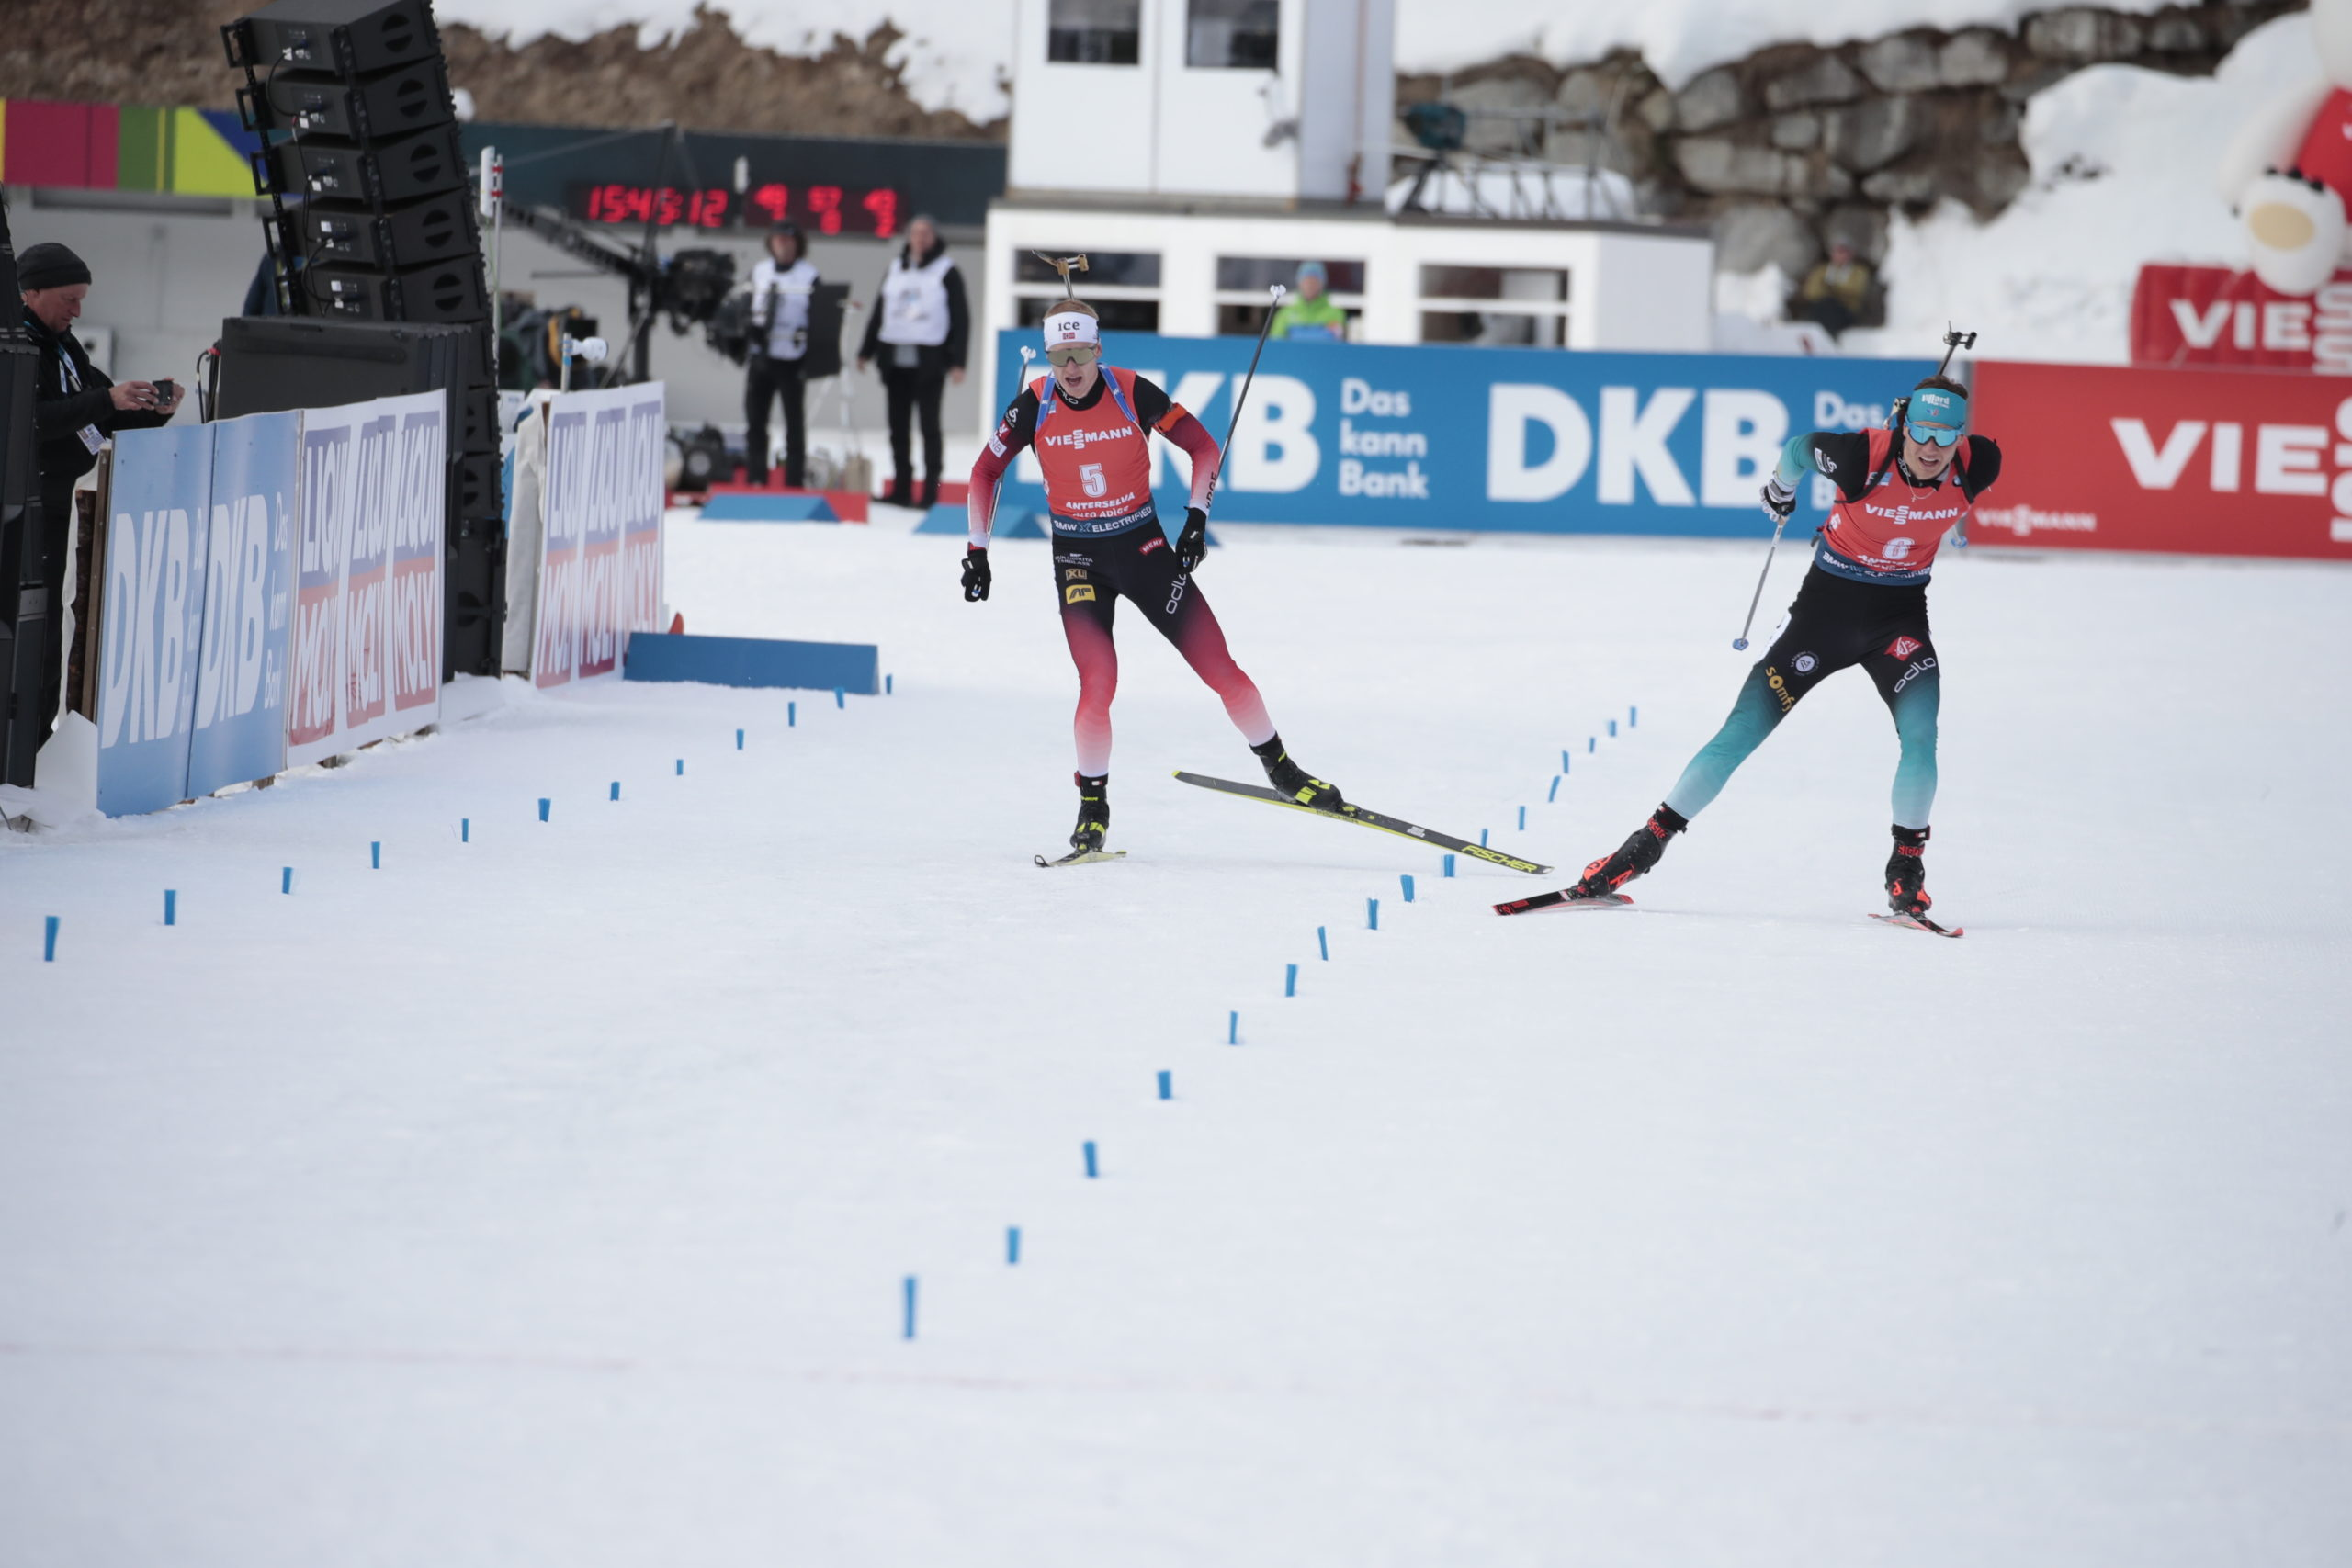 biathlon, Antholz, Jacquelin, Boe